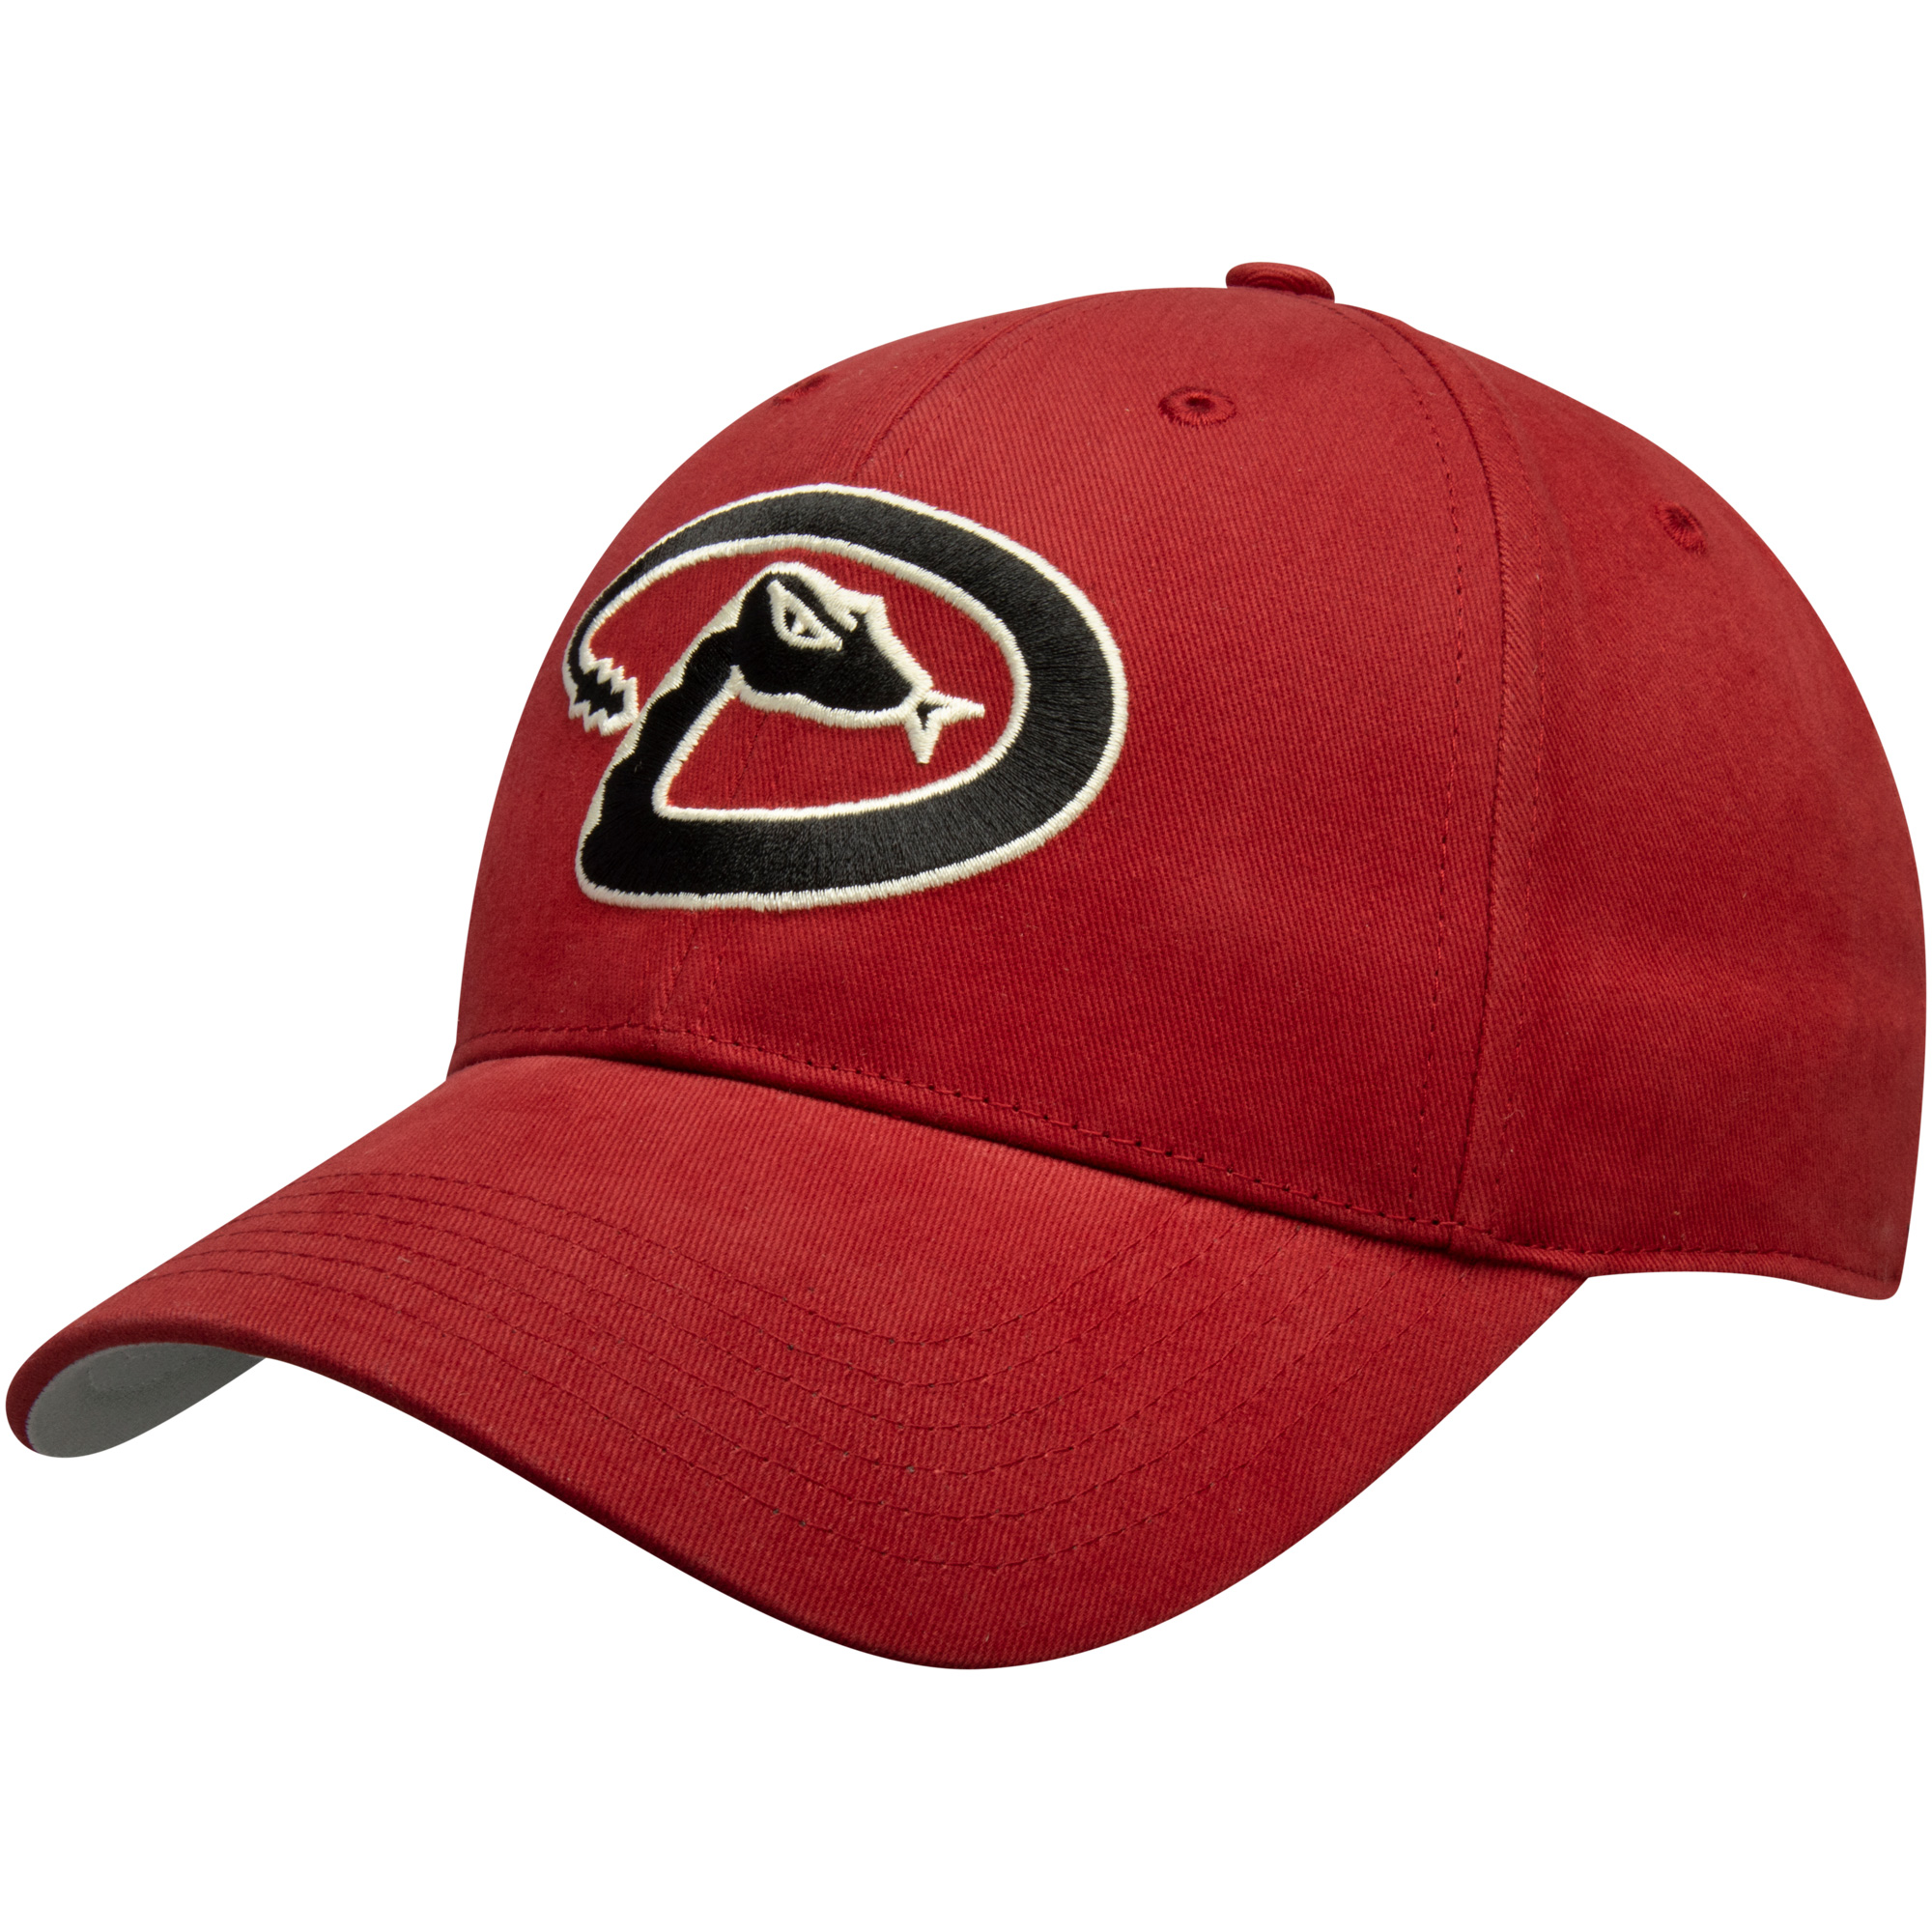 Arizona Diamondbacks '47 Basic Adjustable Hat - Red - OSFA